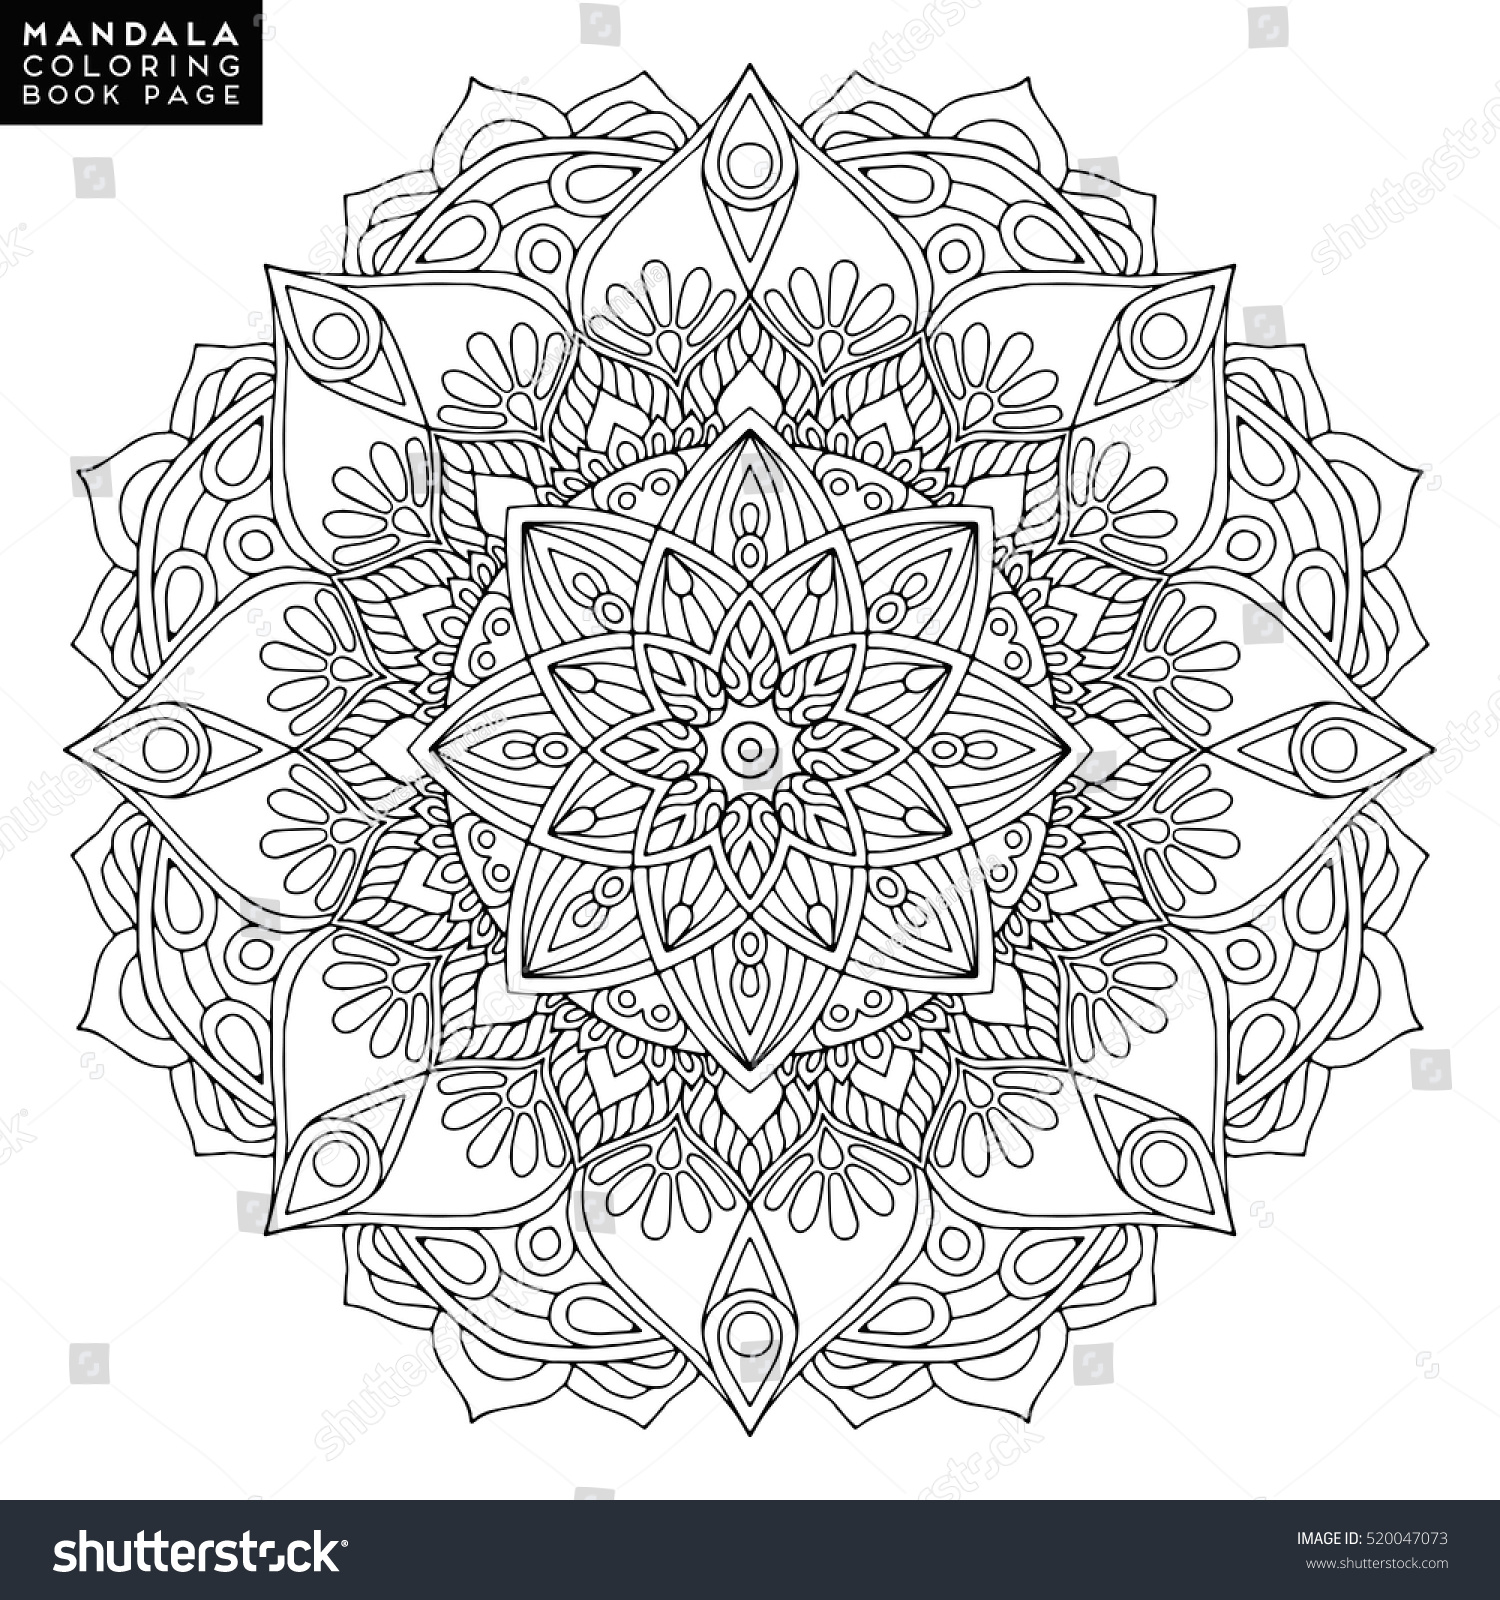 Co coloring book page template - Coloring Book Wedding Template Mandala